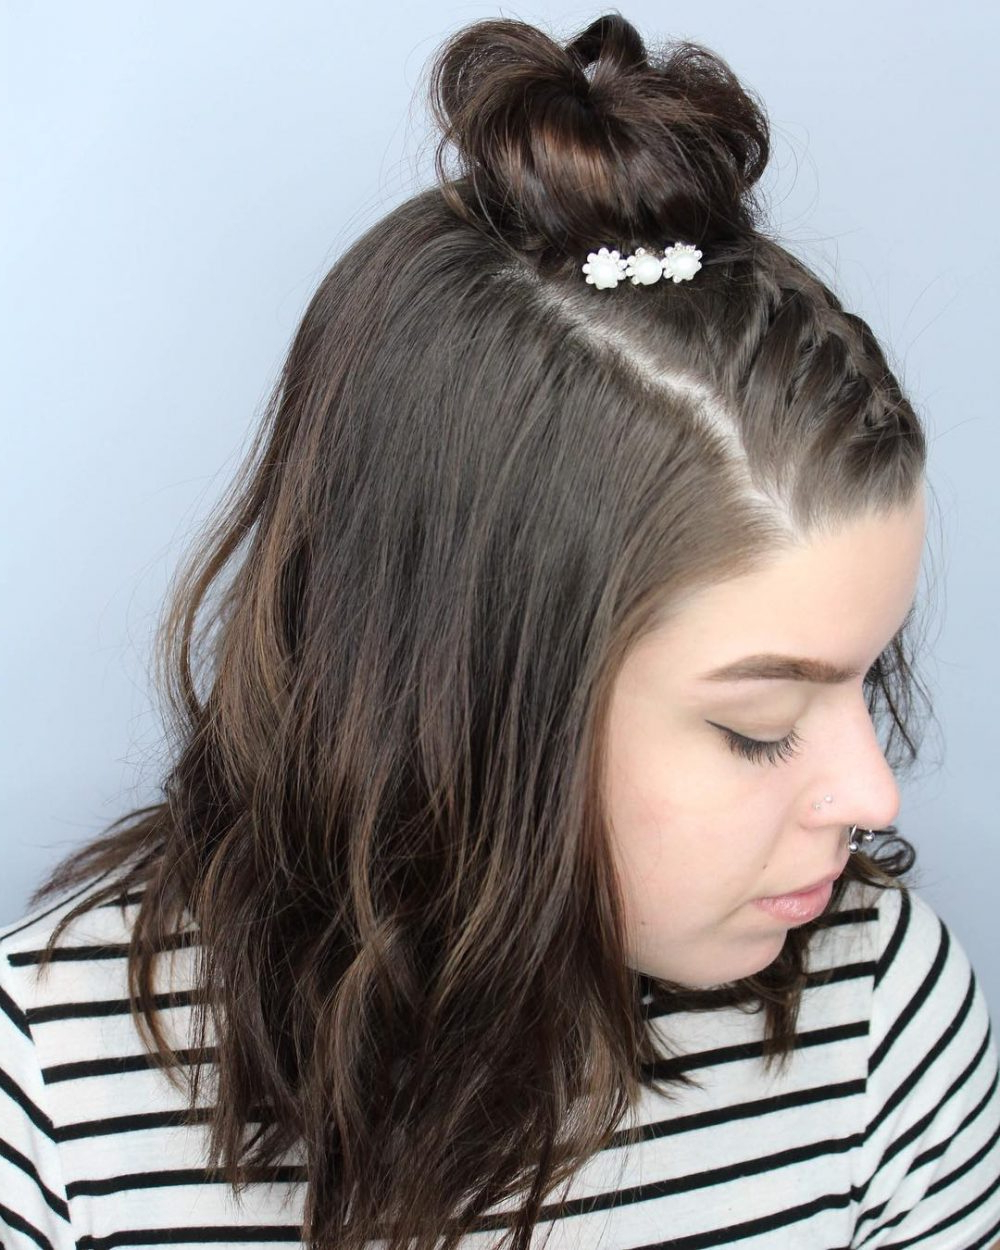 37 Cute French Braid Hairstyles For 2019 Within Popular Topknot Ponytail Braided Hairstyles (View 13 of 20)